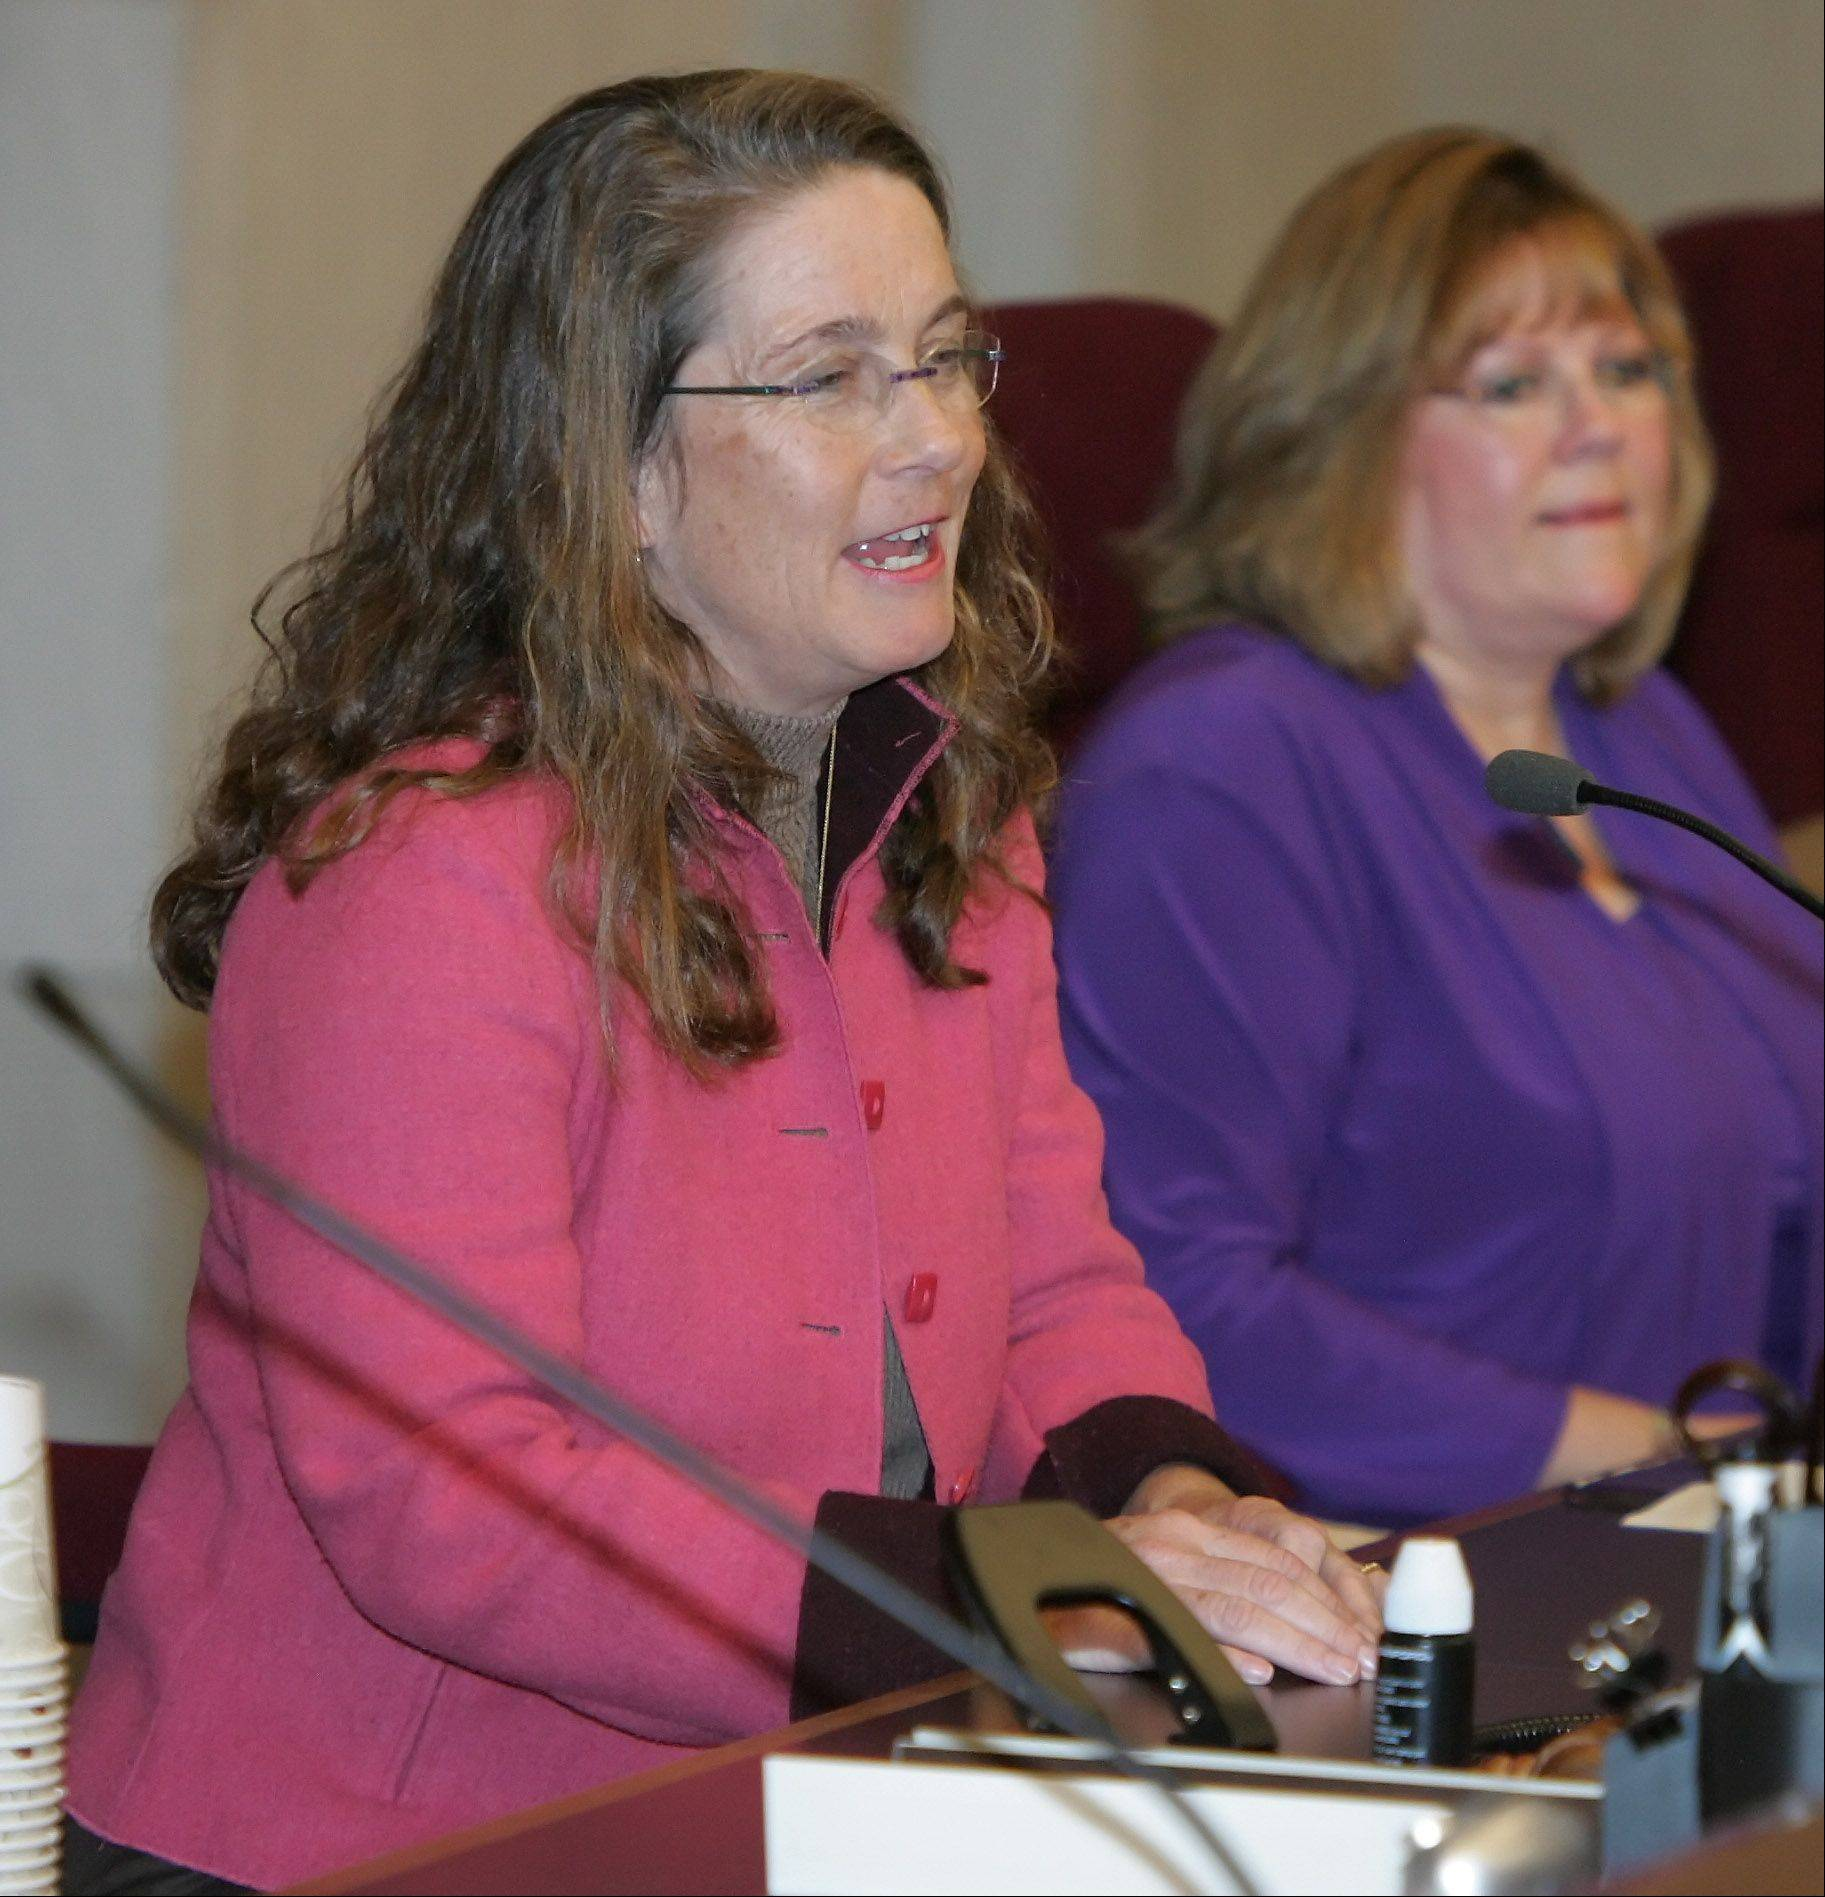 Ann B. Maine was re-elected president of the Lake County Forest Preserve board on Monday during a special meeting in Waukegan.